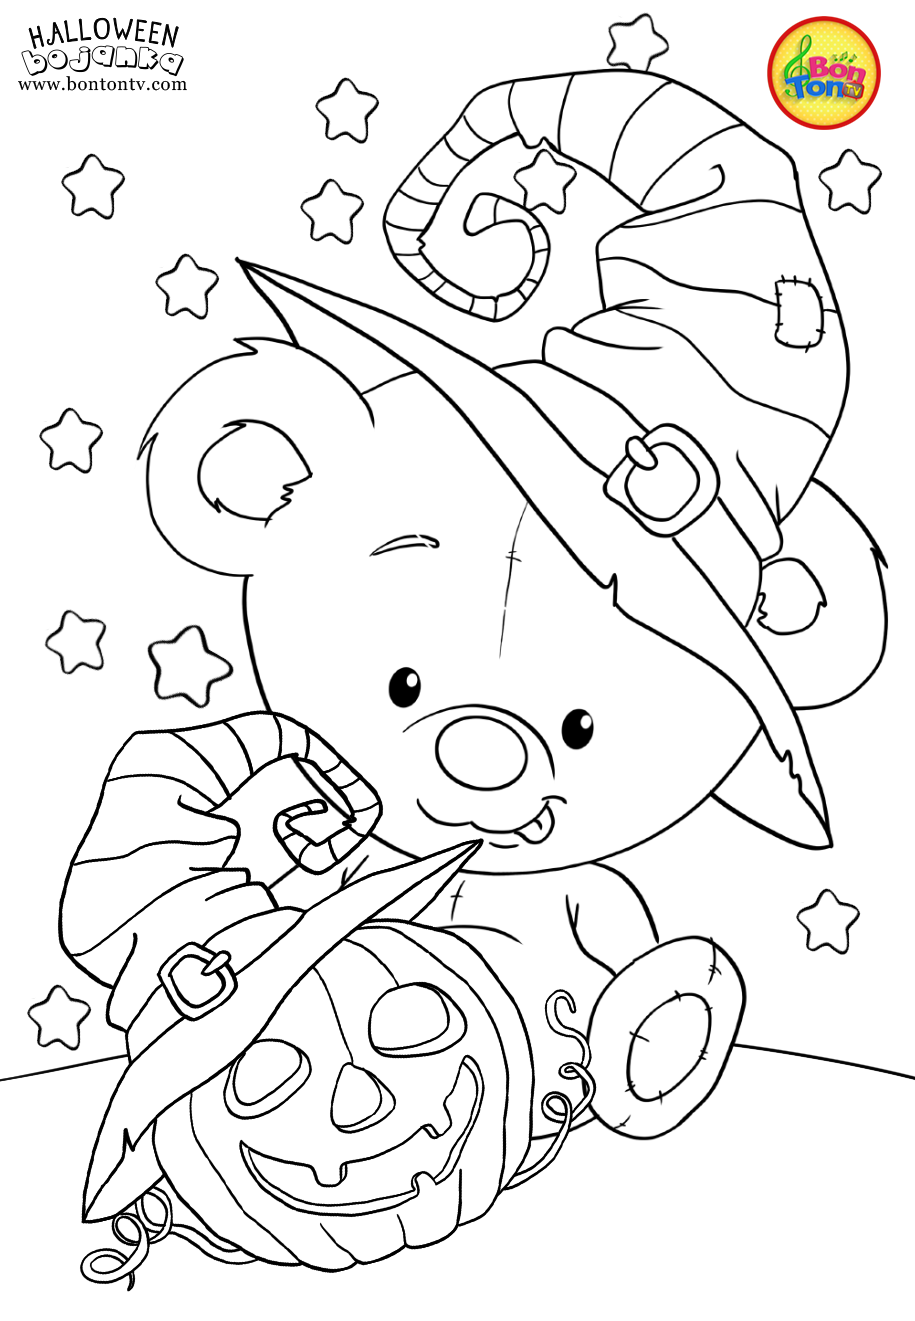 Halloween Coloring Pages For Kids Free Preschool Printables Noc Vjestica Bojanke Halloween Coloring Book Halloween Coloring Sheets Scary Halloween Crafts